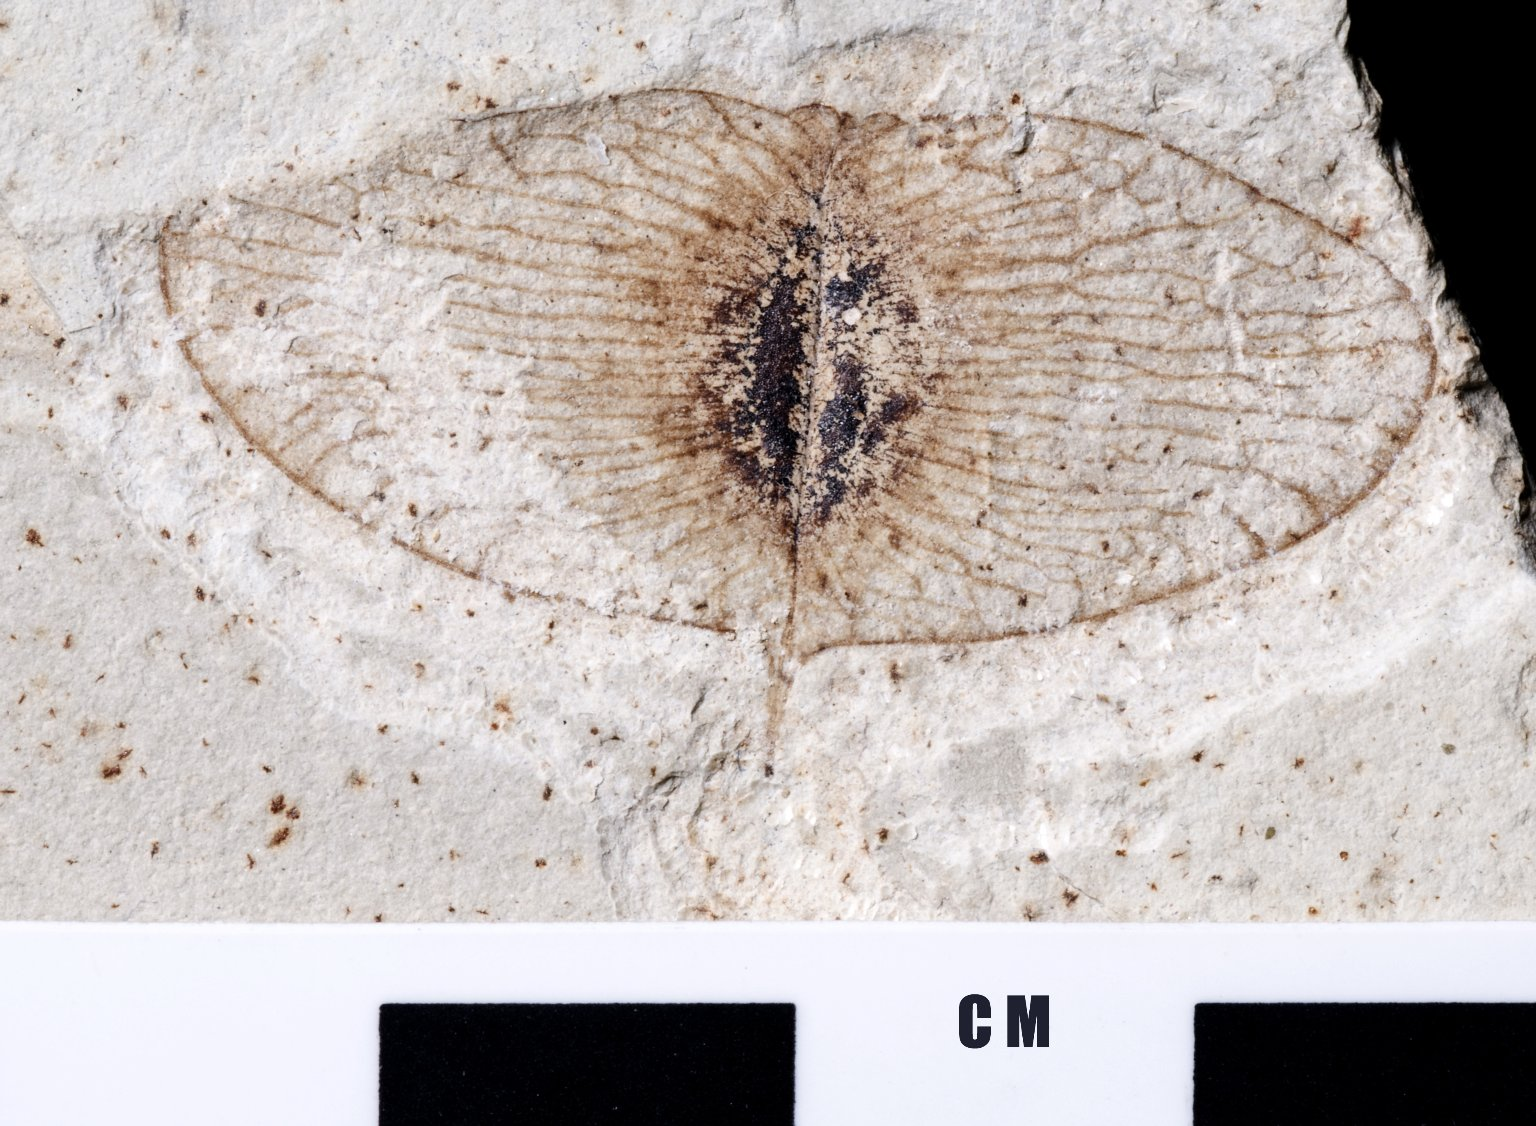 Ptelea cassiodes - seed